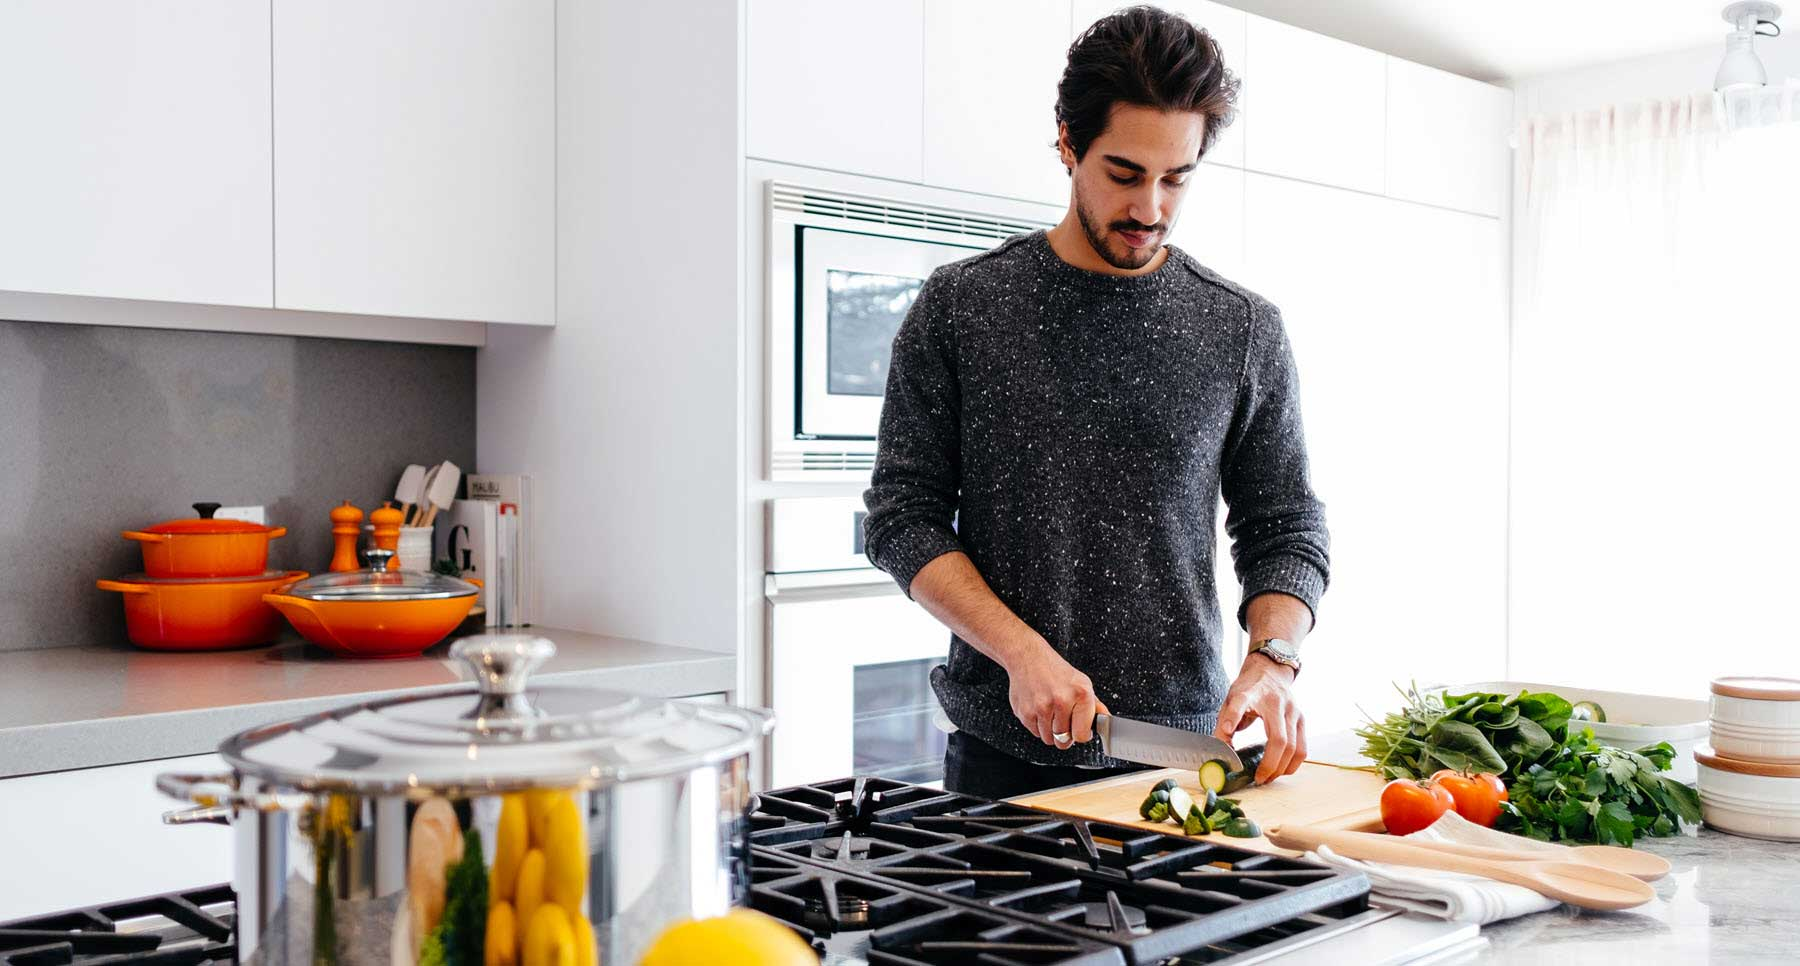 guy cooking healthy food in the kitchen for his mental health